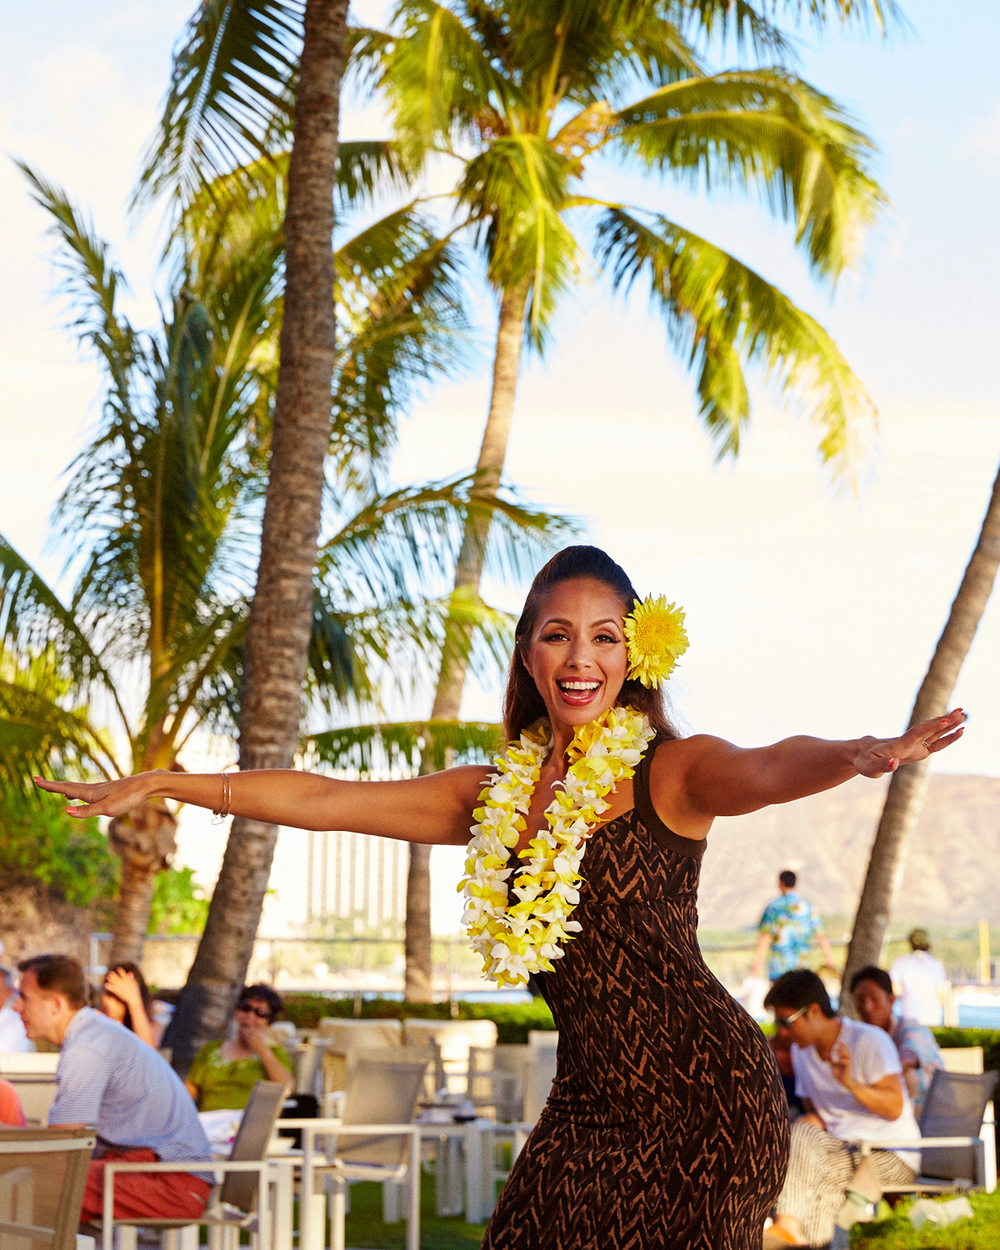 FORMER MISS HAWAII AT HOUSE WITHOUT A KEY